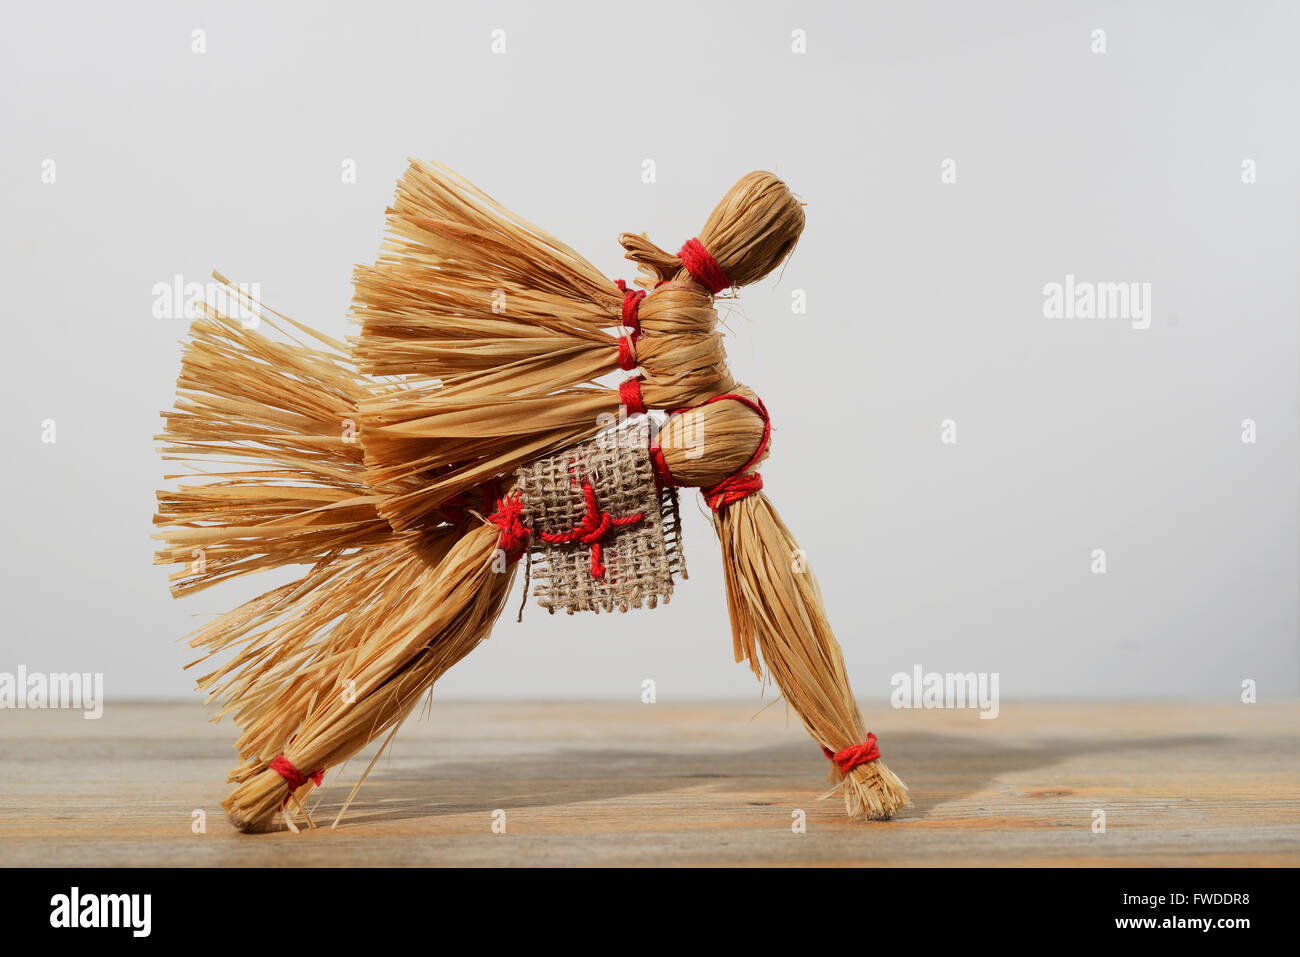 traditional Russian toy, horse of the bast on neutral background - Stock Image